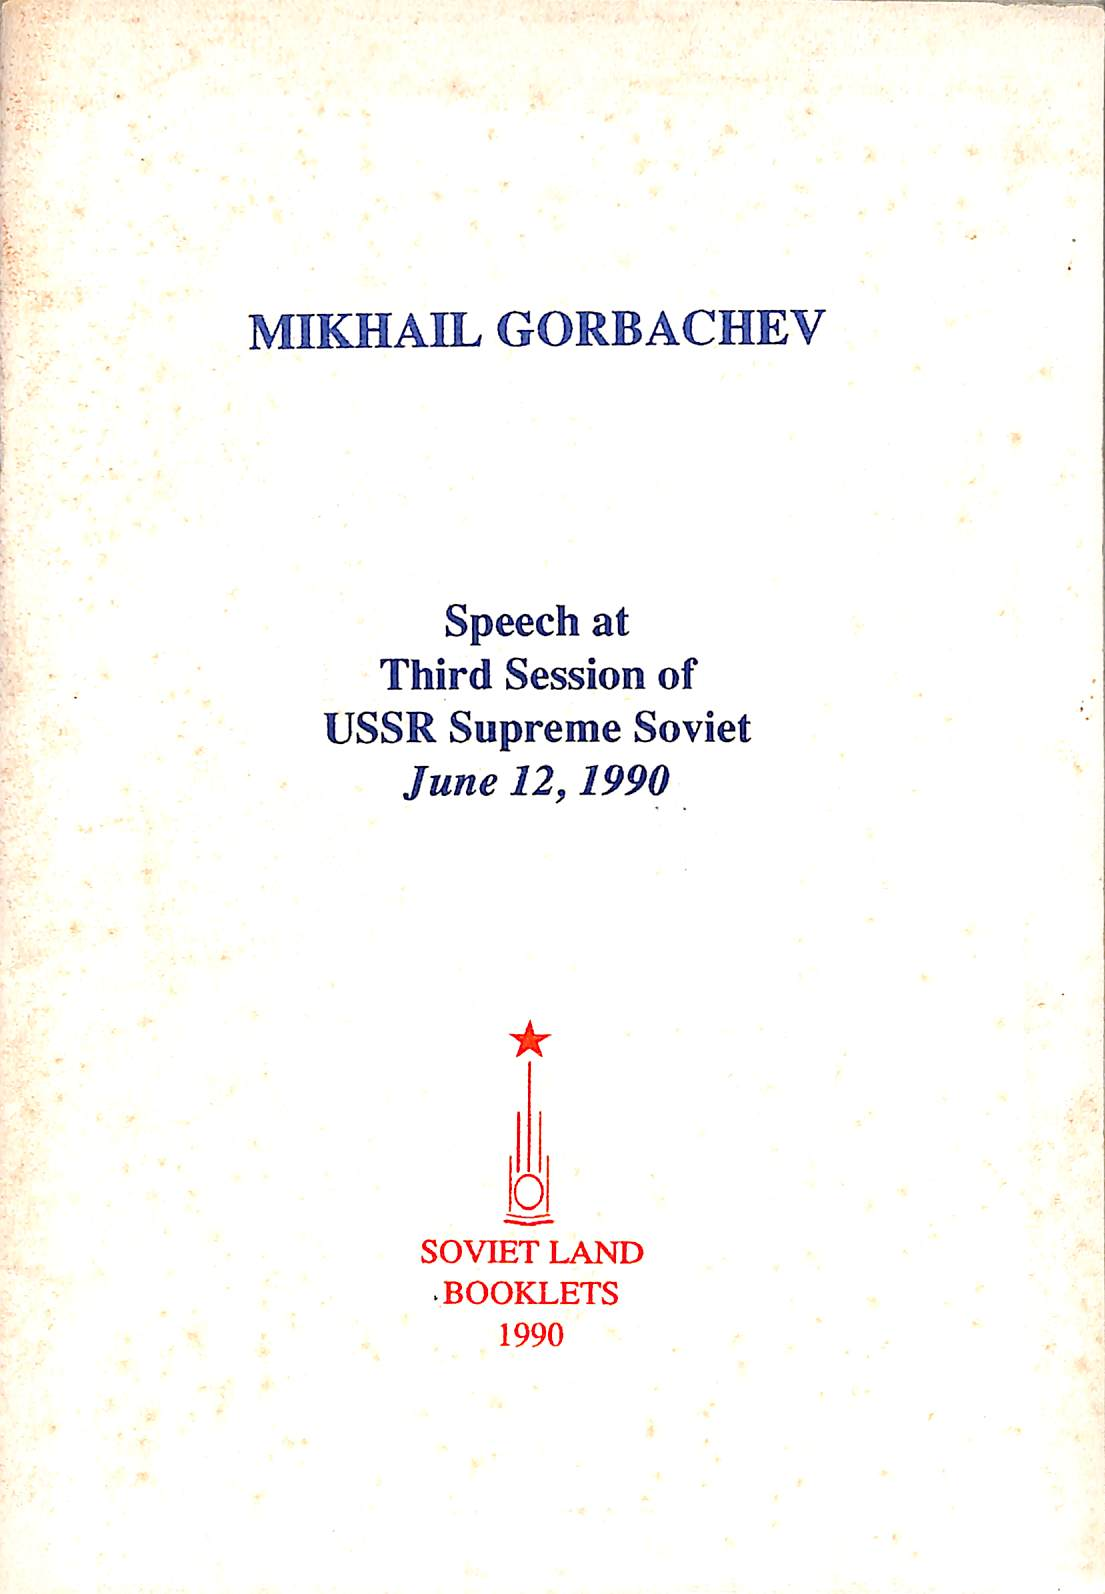 Speech At 3rd Session of USSR Supreme Soviet